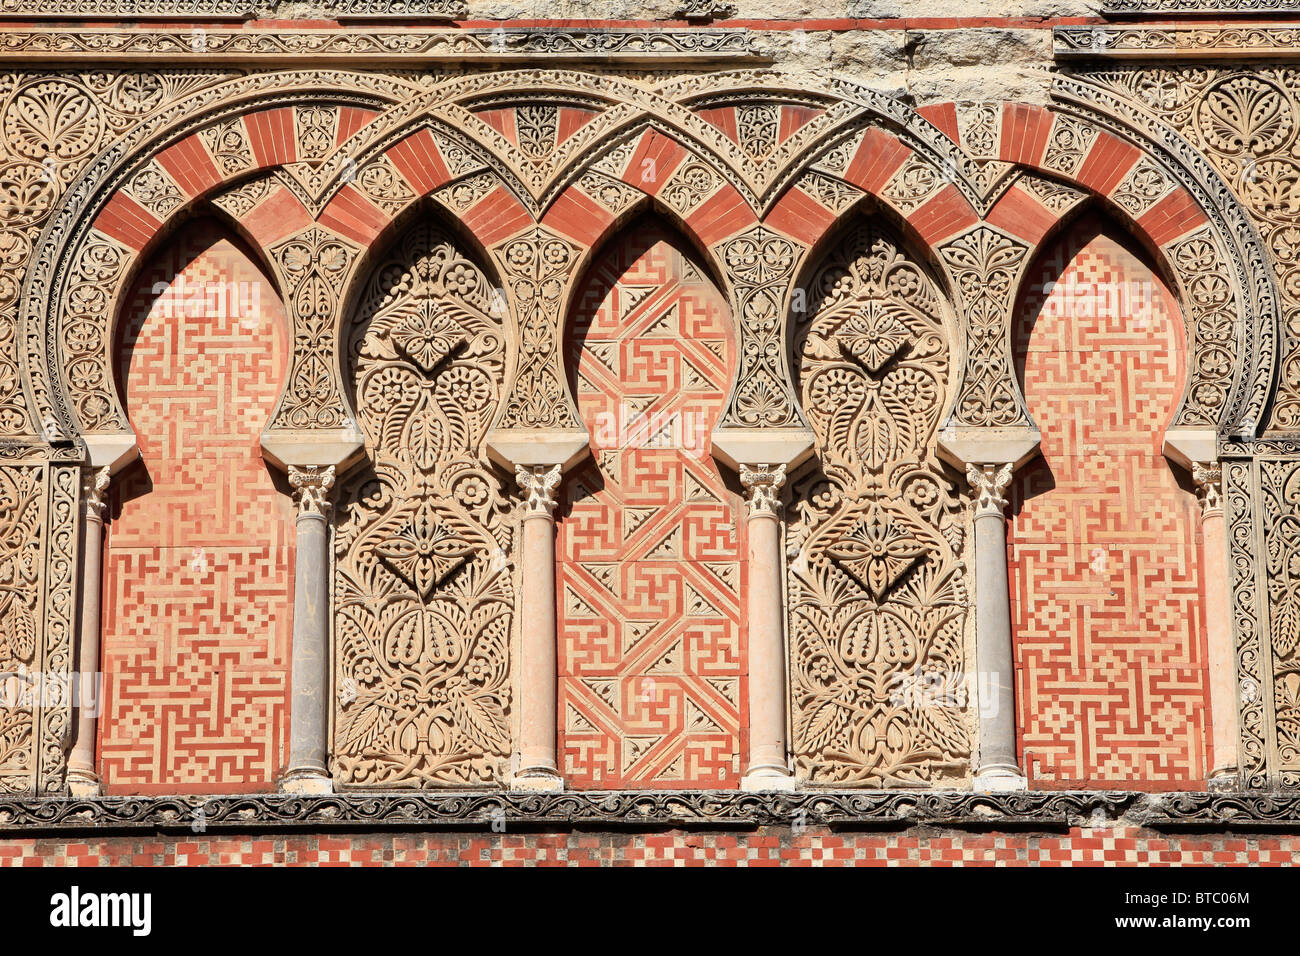 medieval islamic architecture on the facade of the moque cathedral